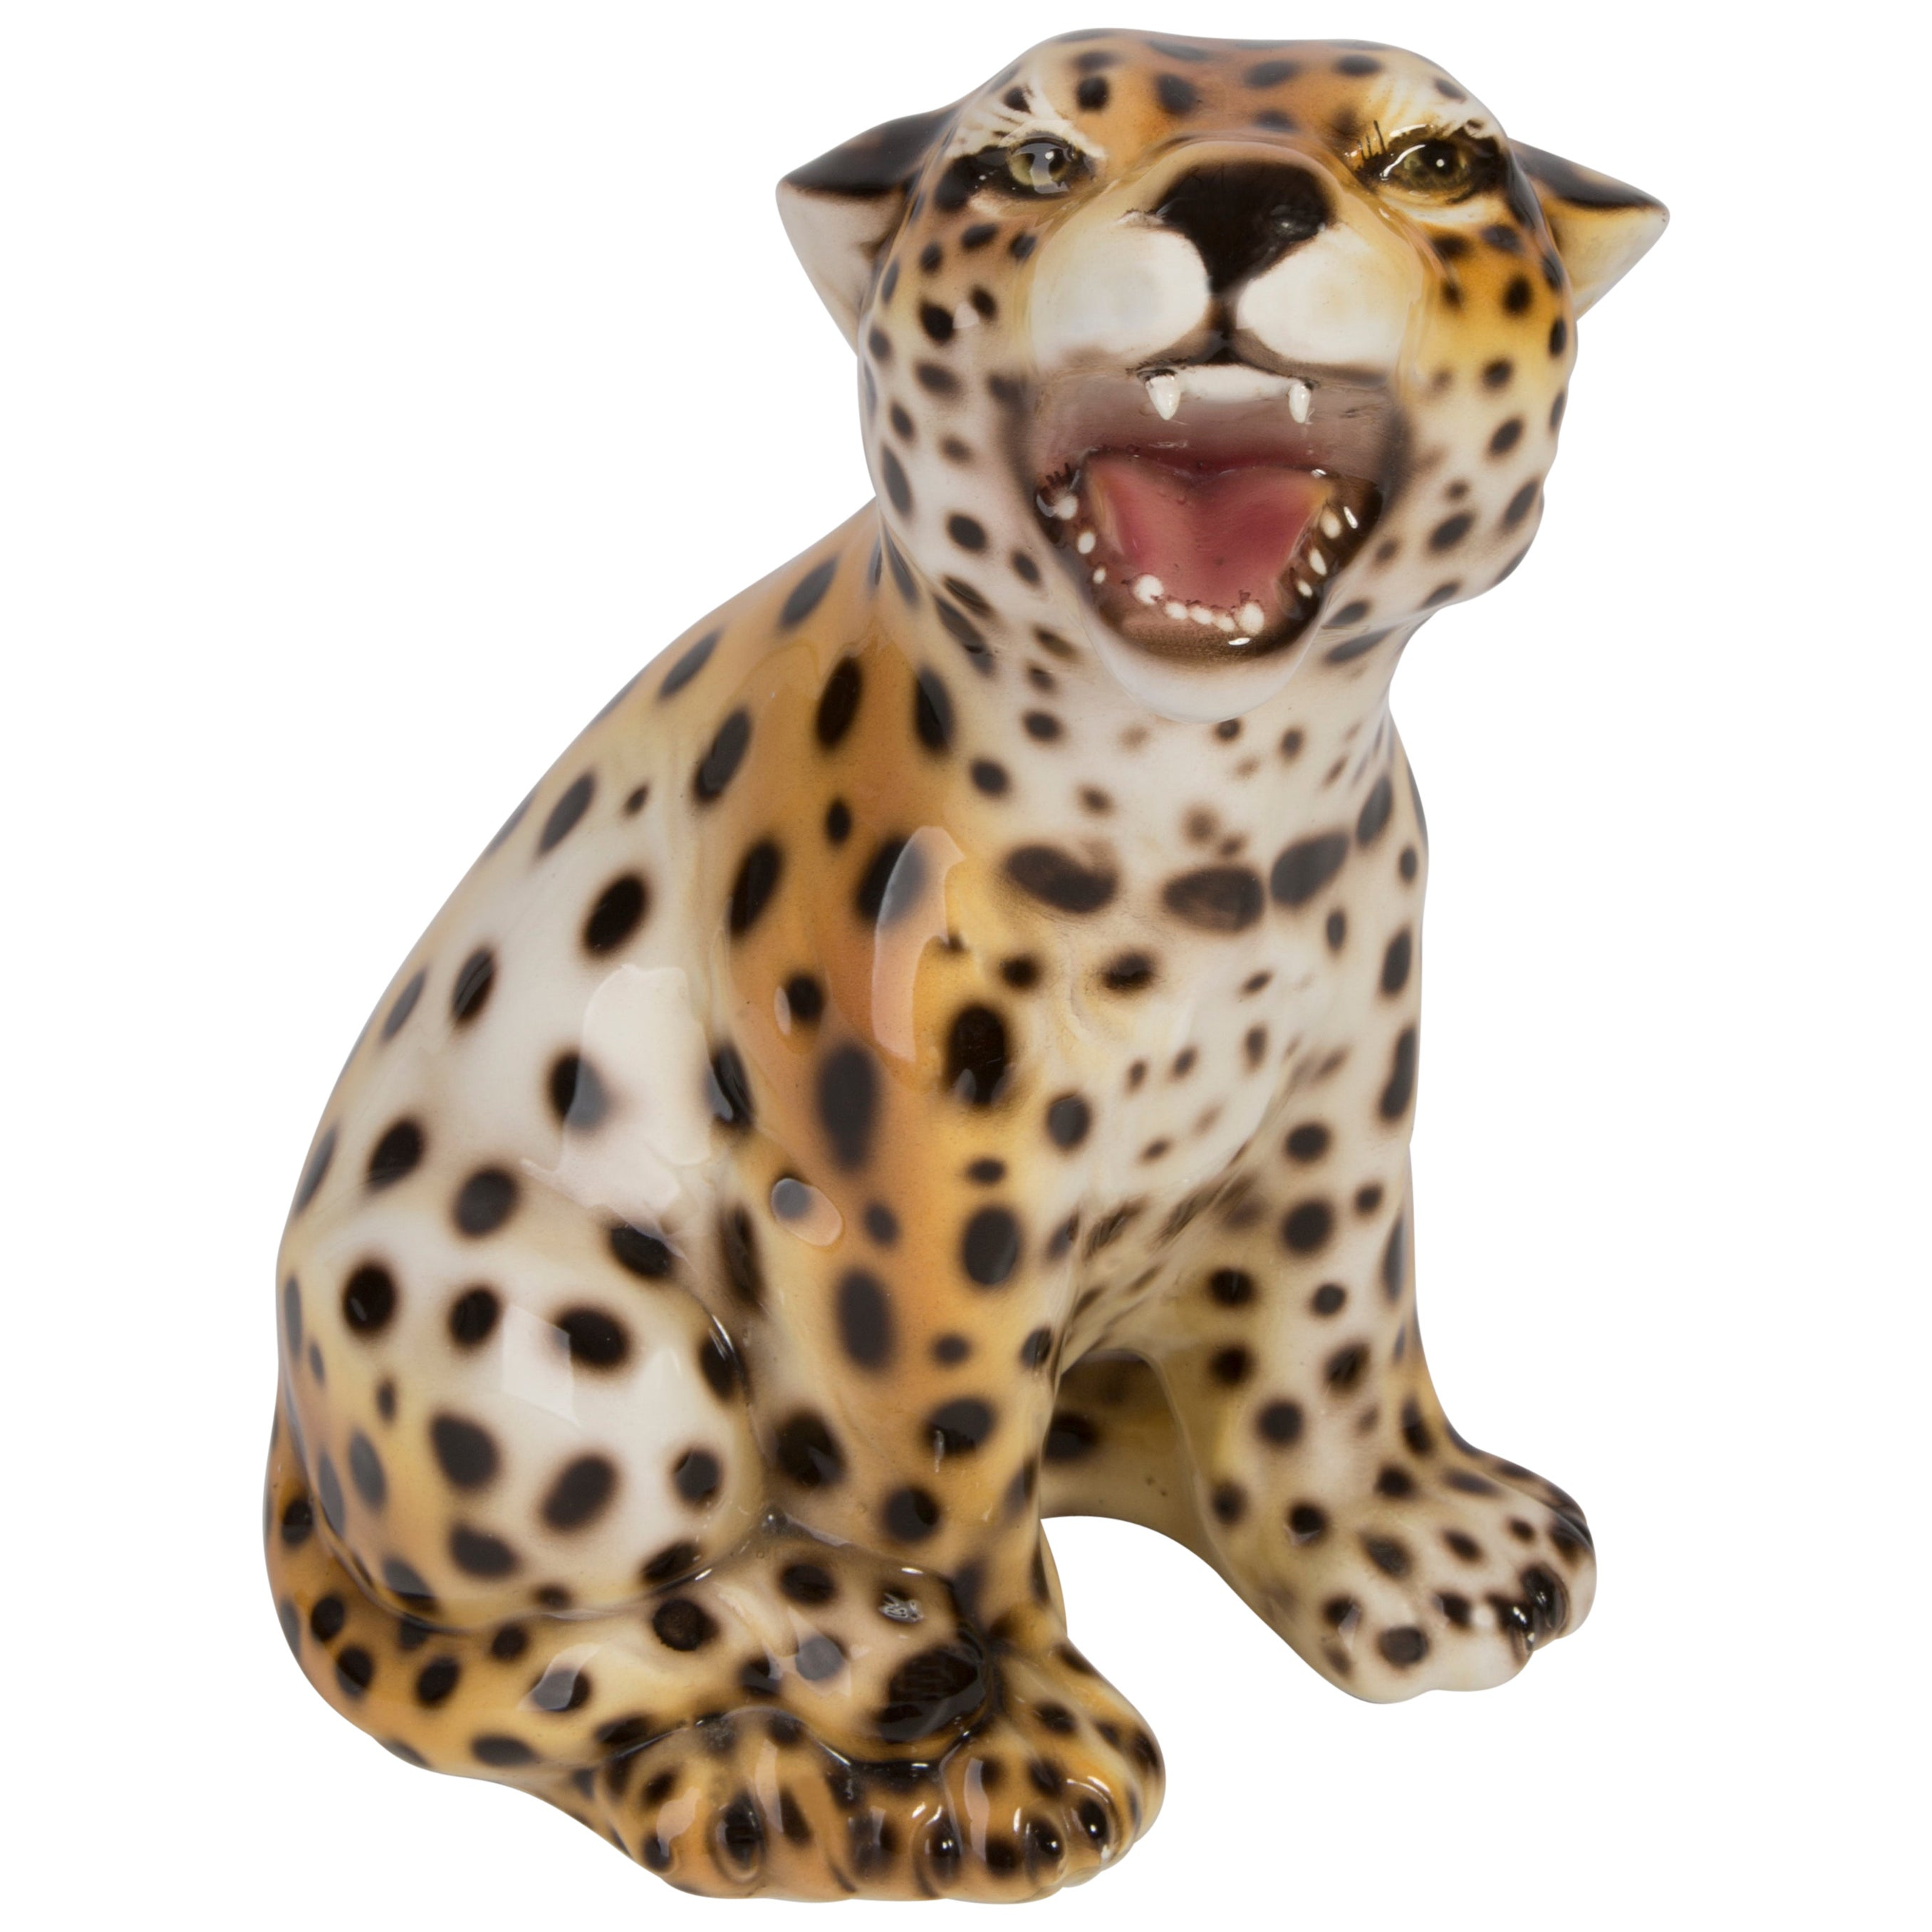 Small Rare Ceramic Leopard Decorative Sculpture, Italy, 1960s